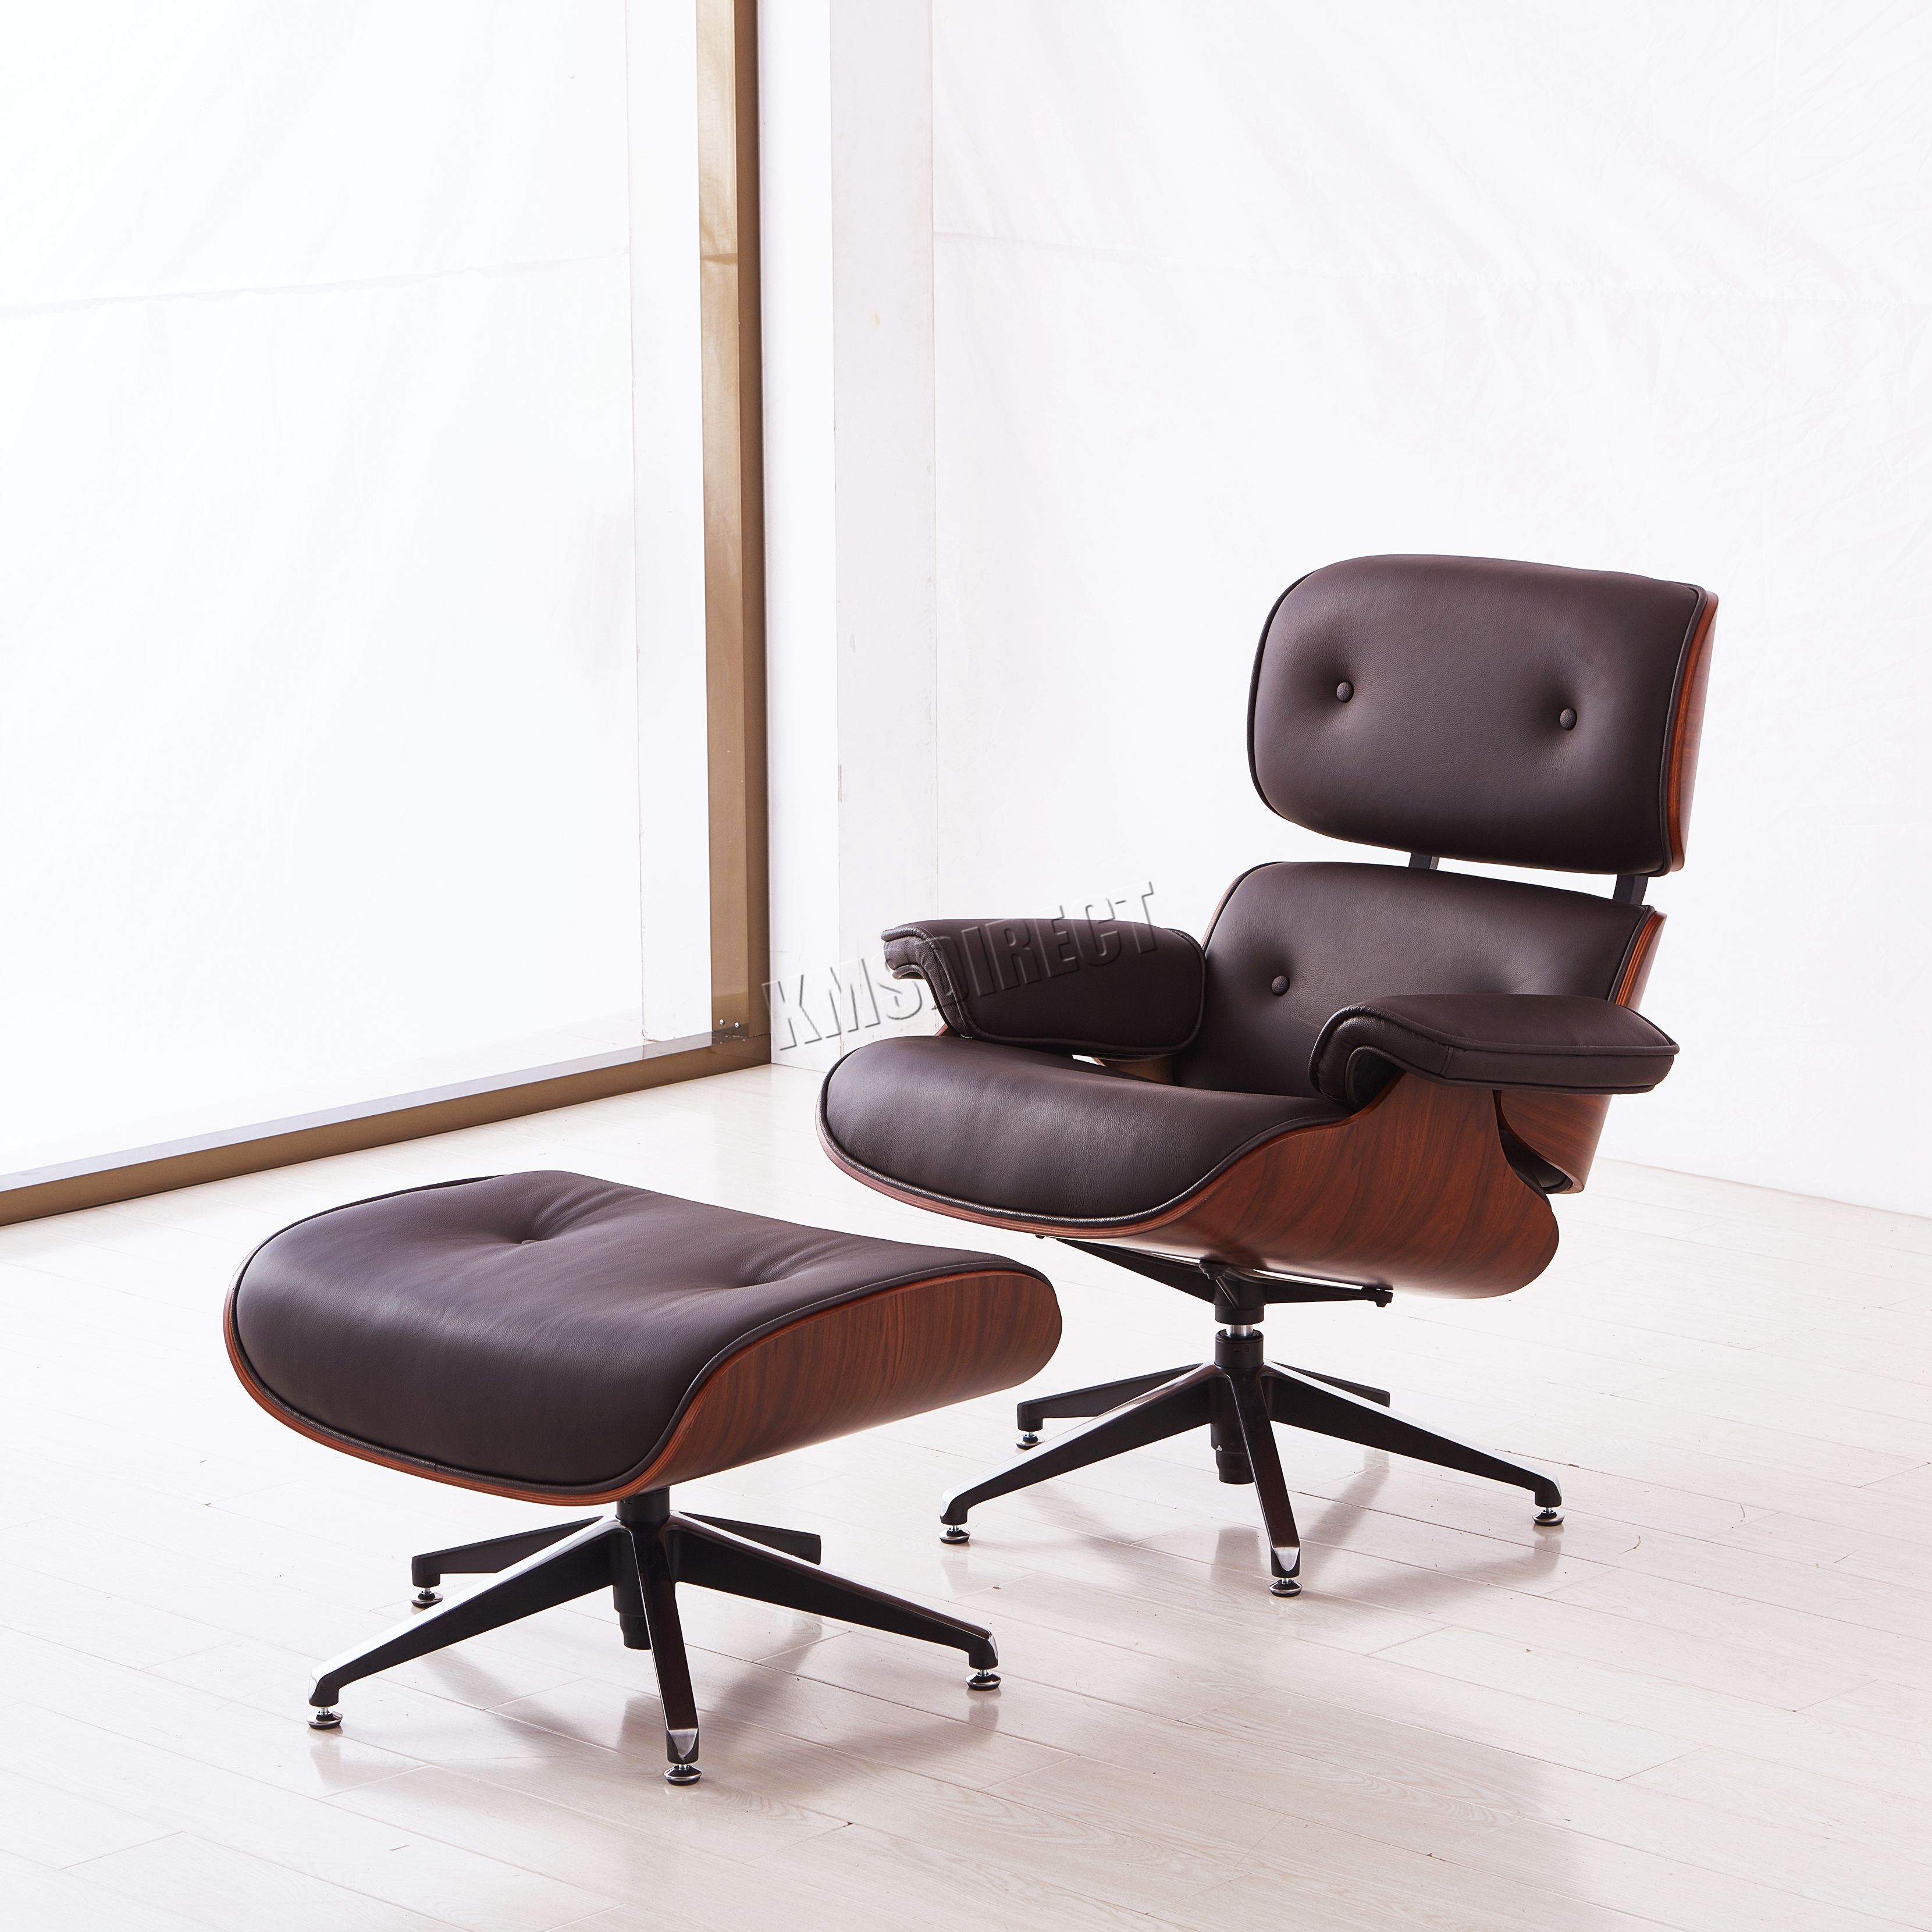 foxhunter luxury lounge chair and ottoman real genuine leather